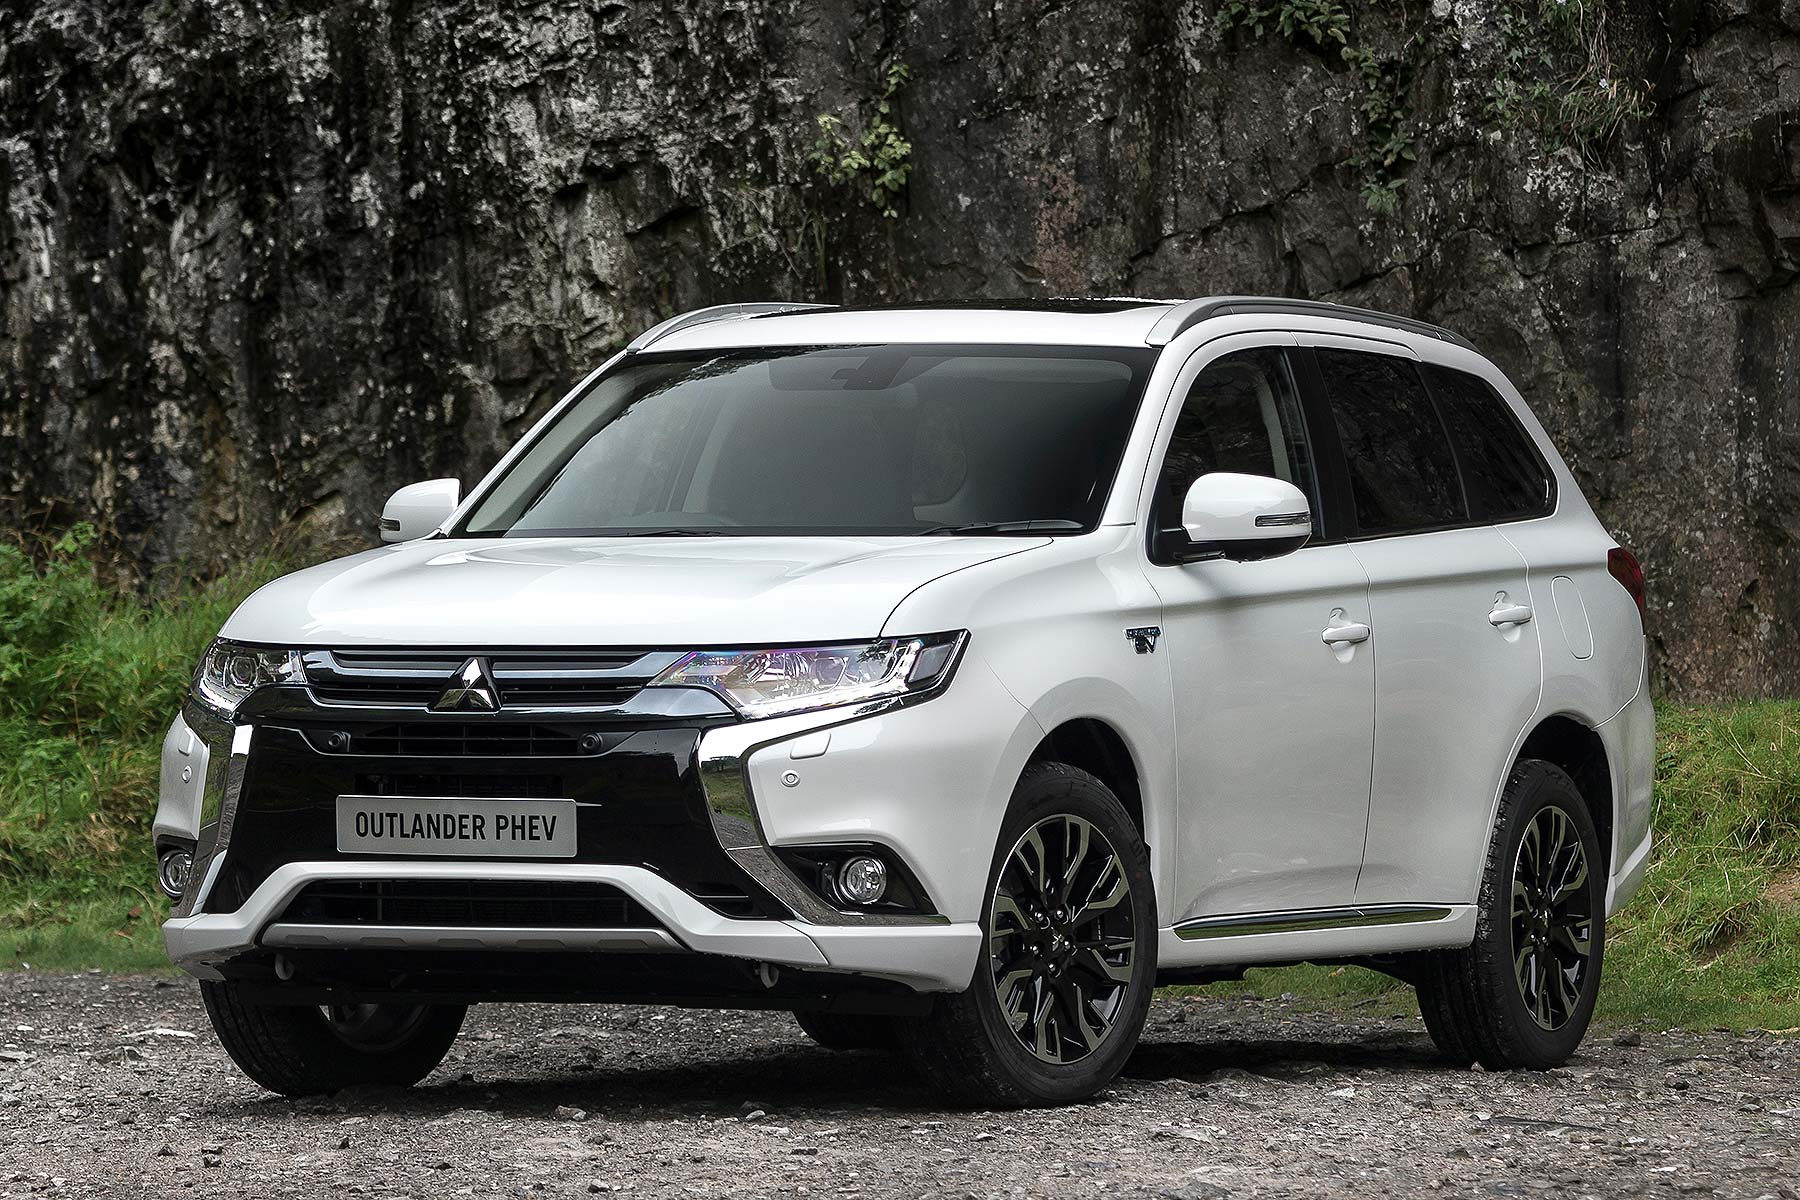 2016 mitsubishi outlander phev review uk first drive motoring research